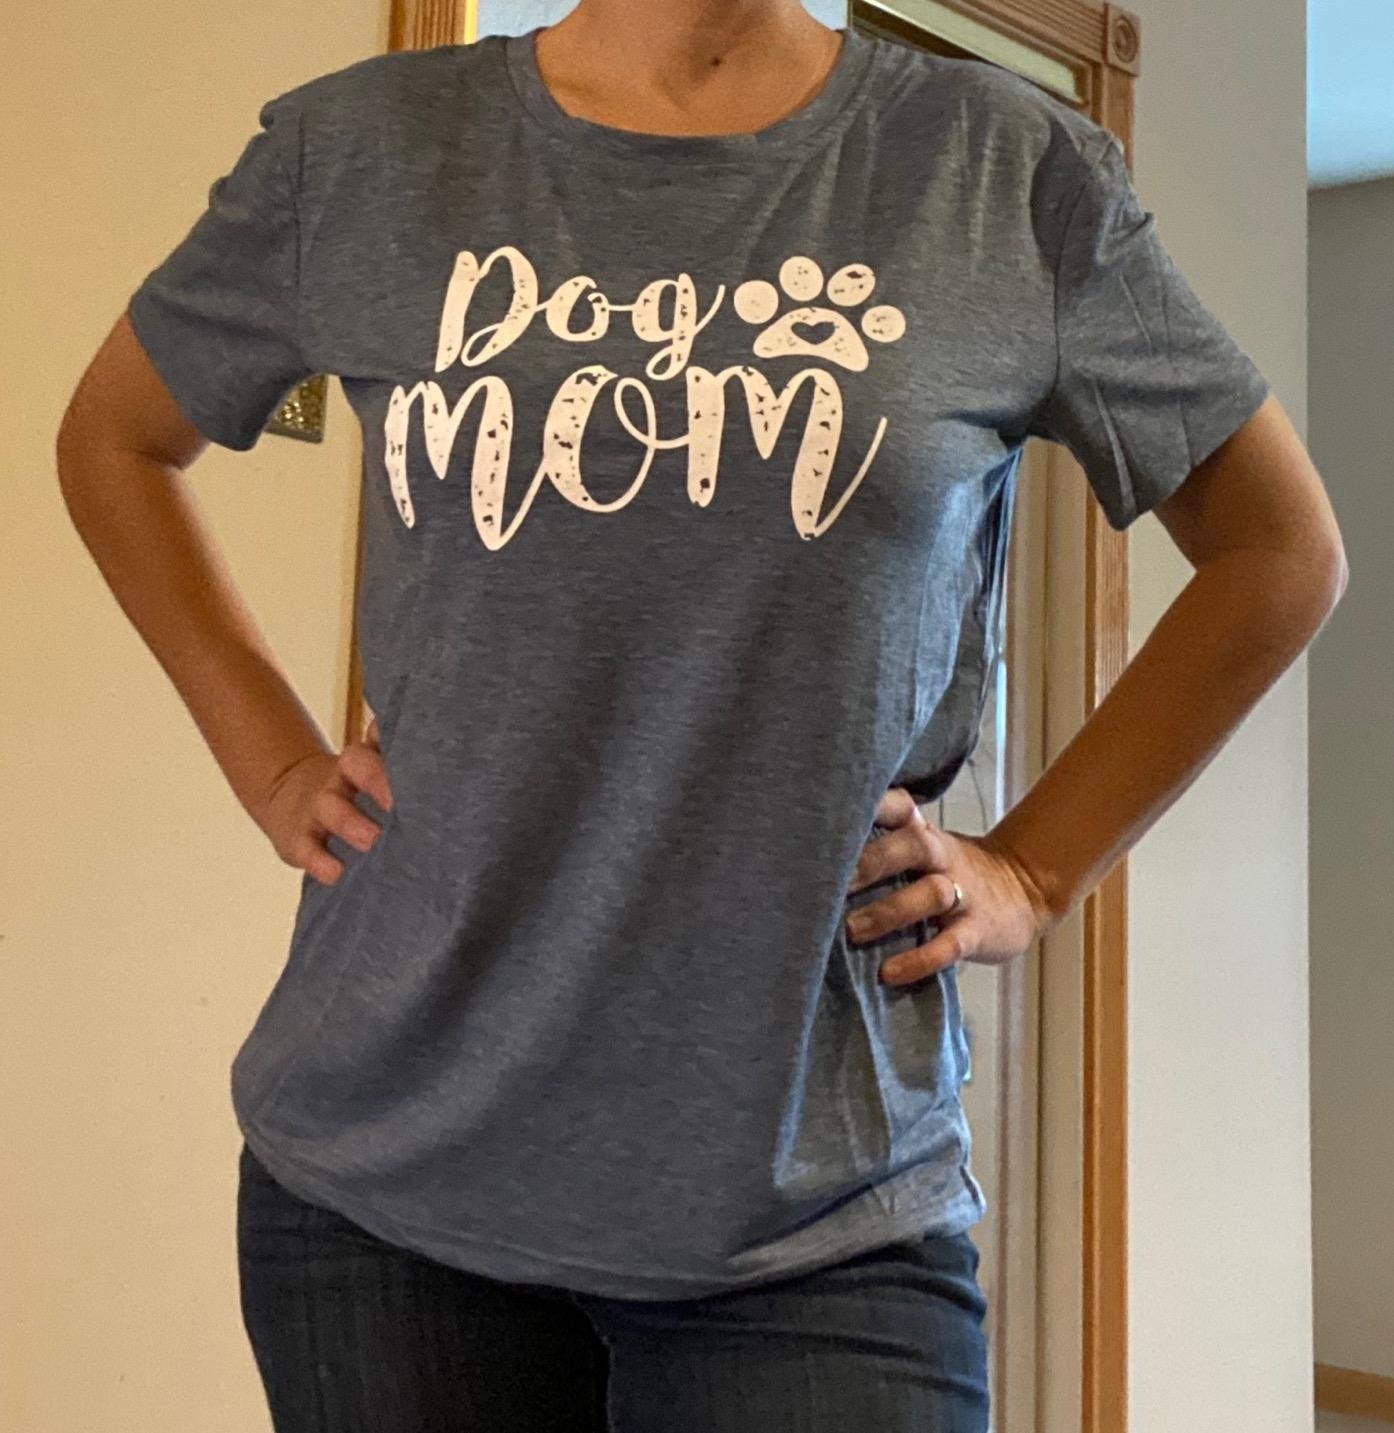 """The shirt, which says """"Dog Mom"""" in white with a paw print design next to it, in gray"""